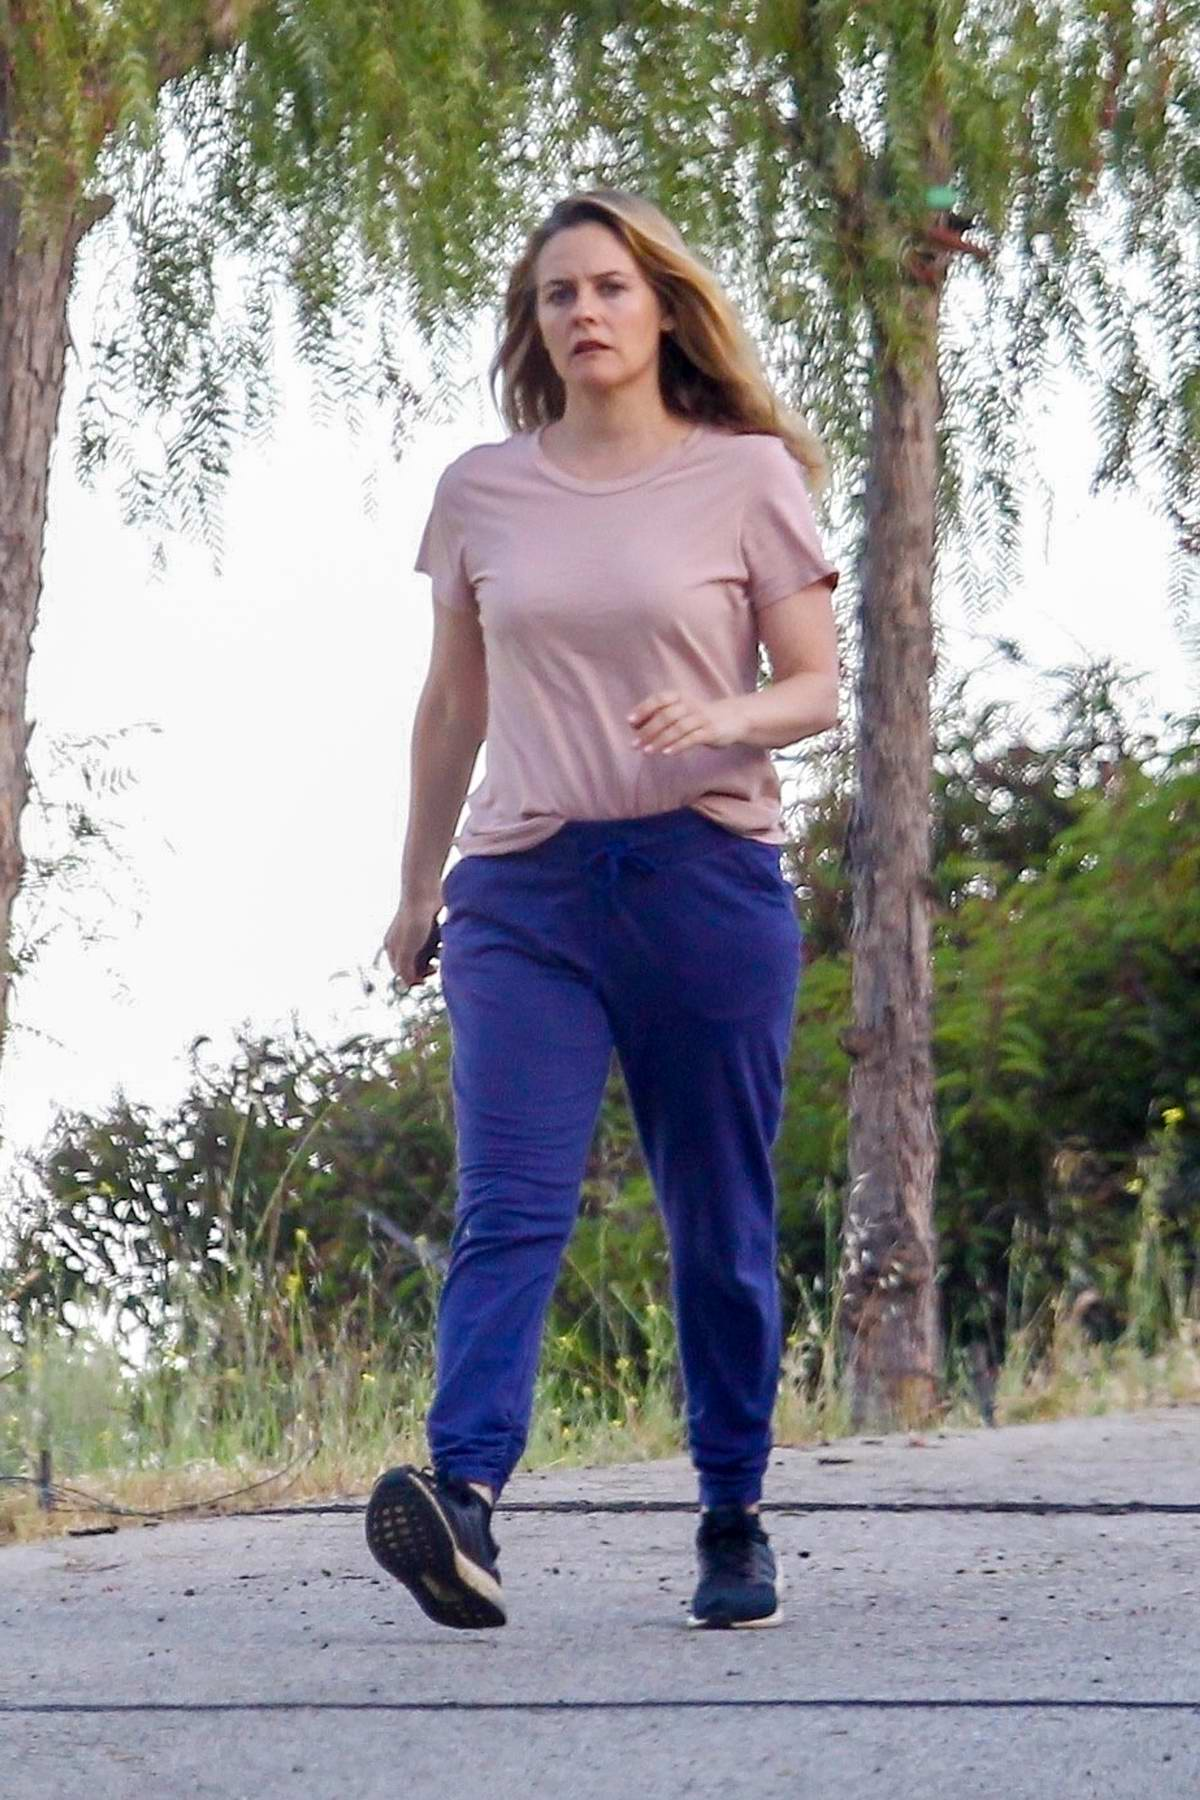 Alicia Silverstone takes her dogs out for a walk with her boyfriend in Beverly Hills, California